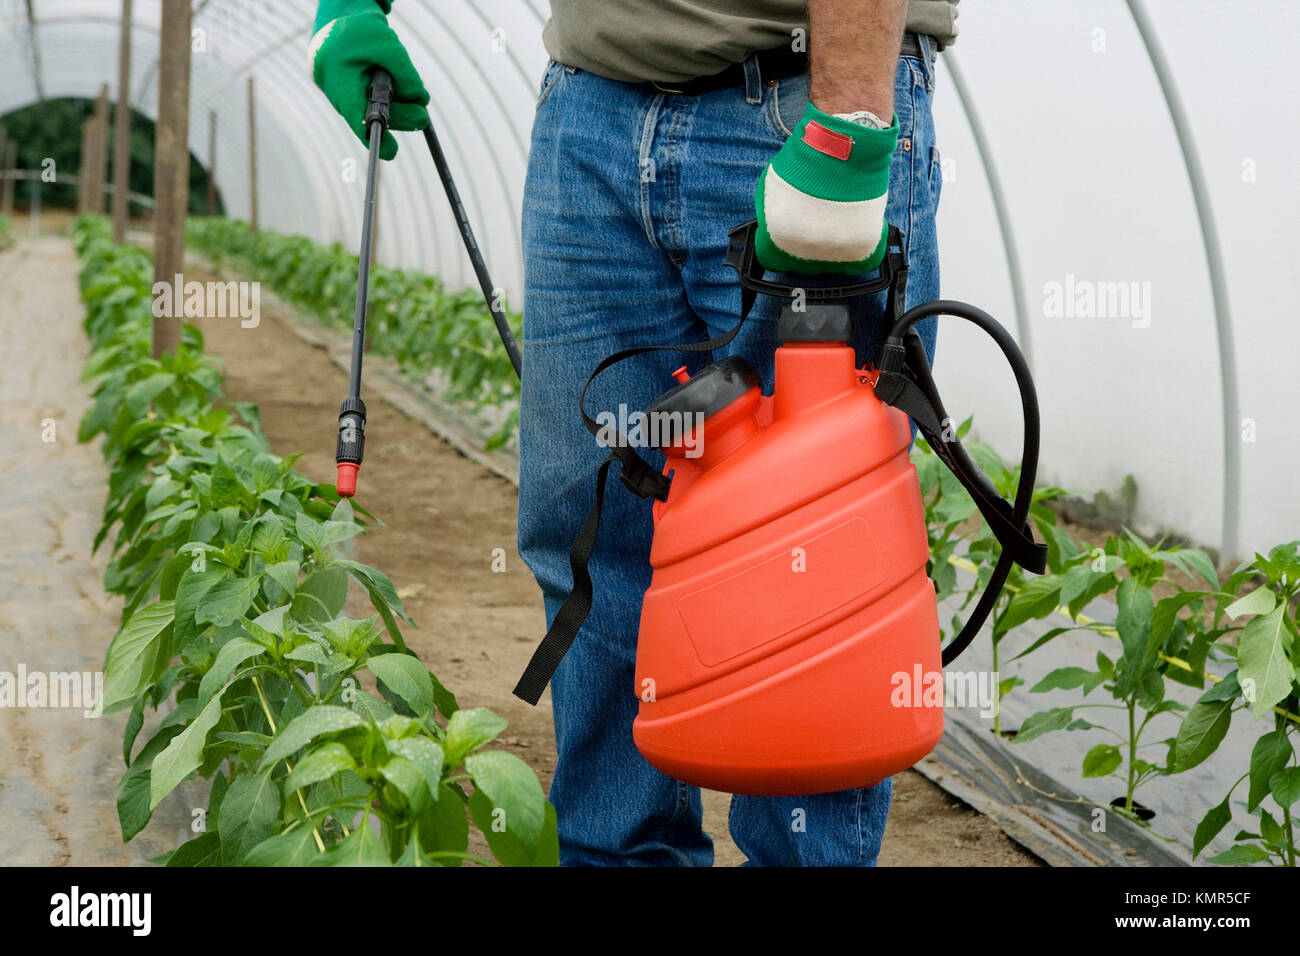 green pepper plant treatment with sprayer (insecticides, pesticides). Greenhouse. Agricultural production. Stock Photo